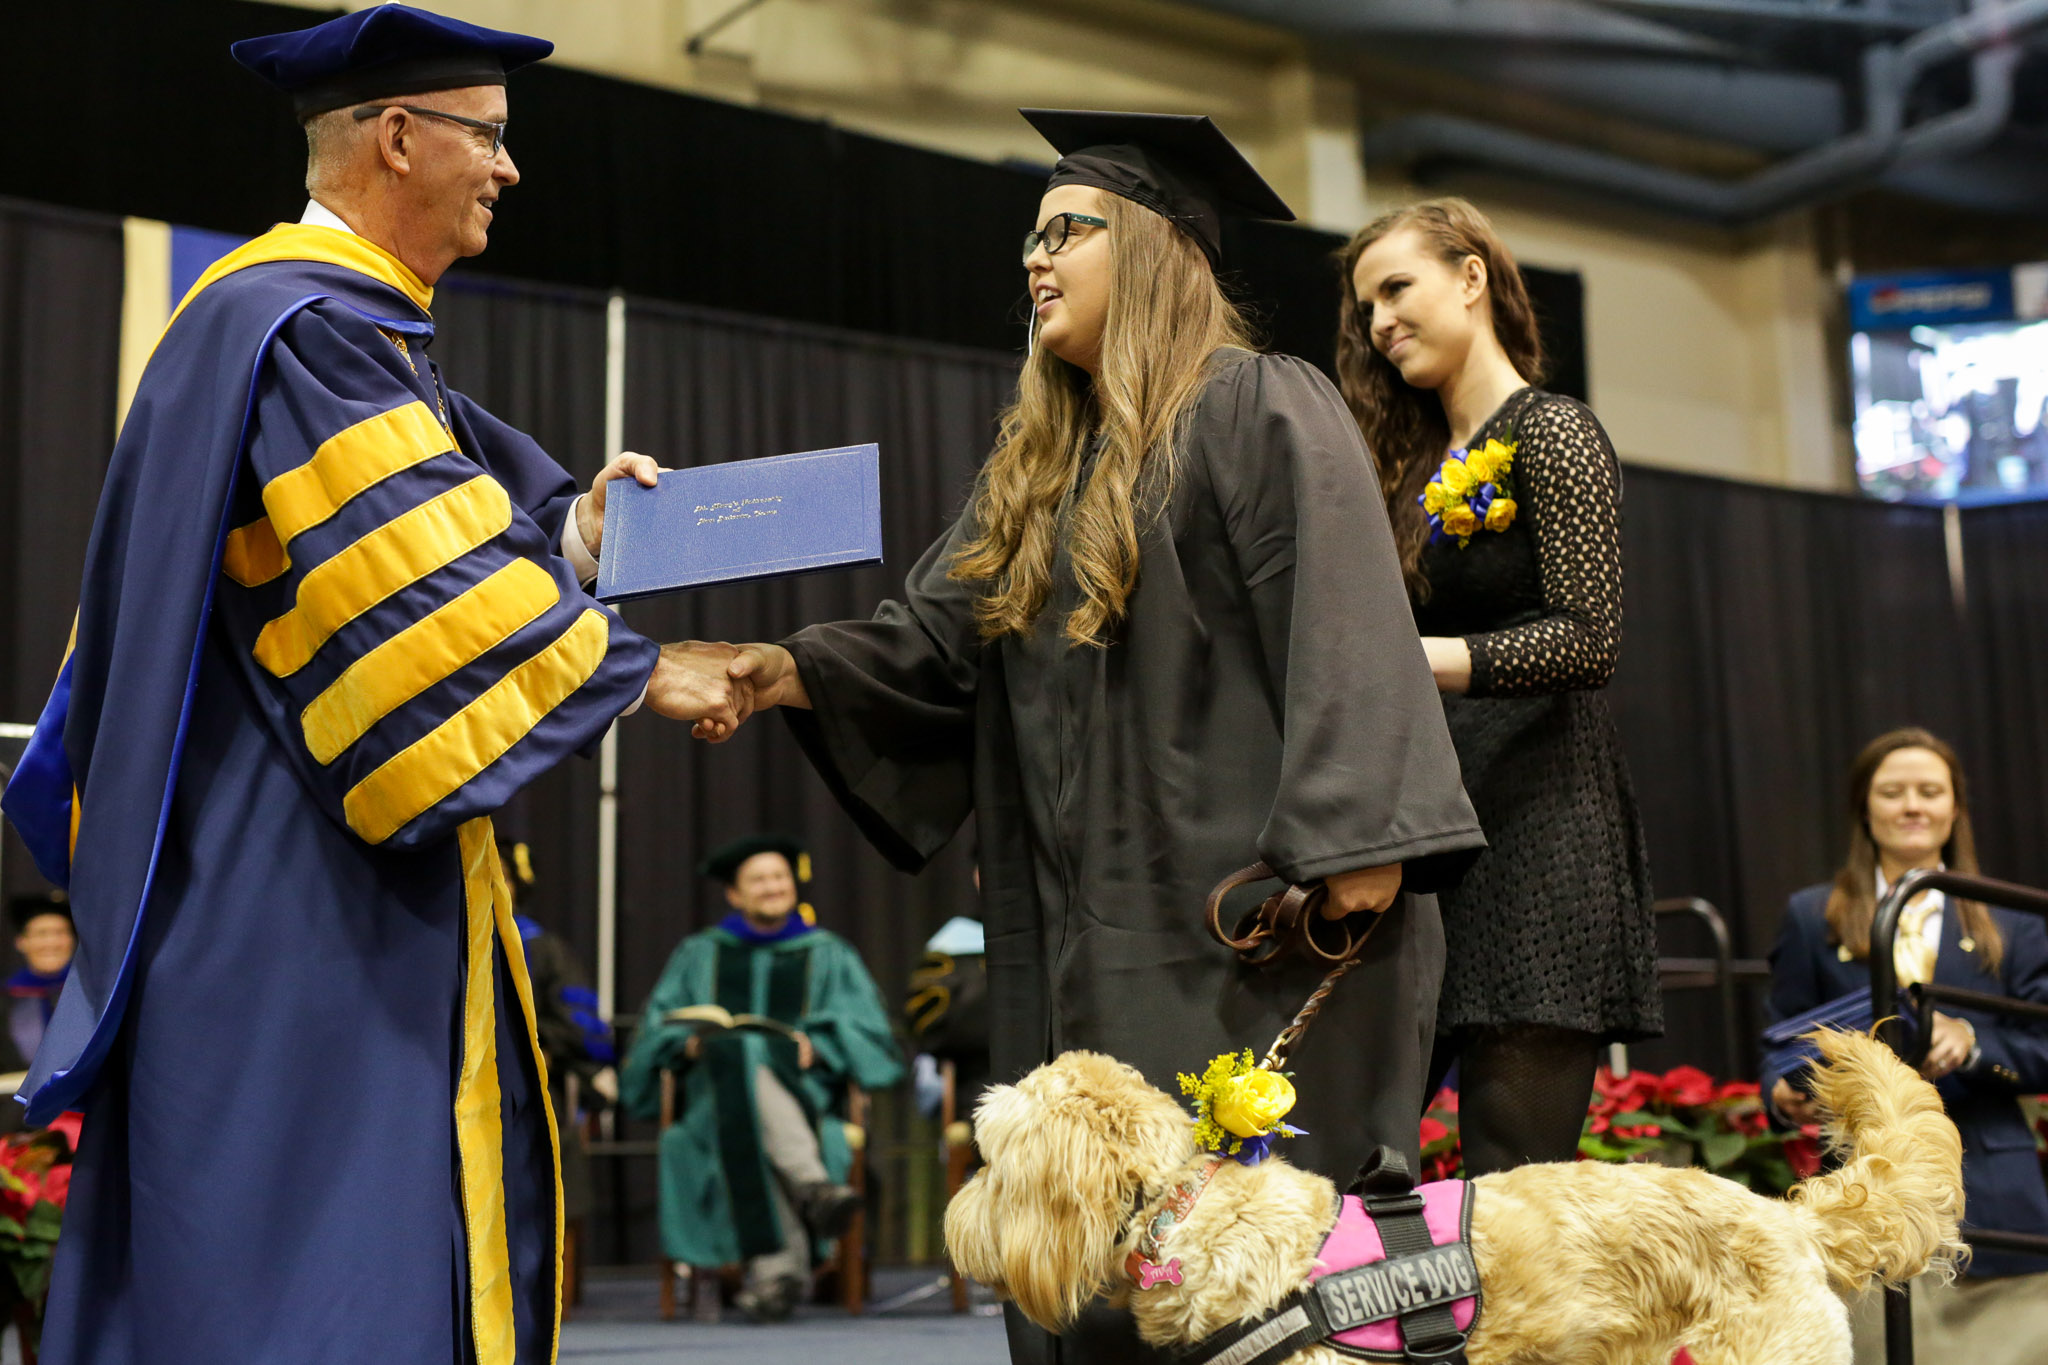 Mikayla Bass accepts her diploma from the President of St. Mary's University, Thomas Mengler.